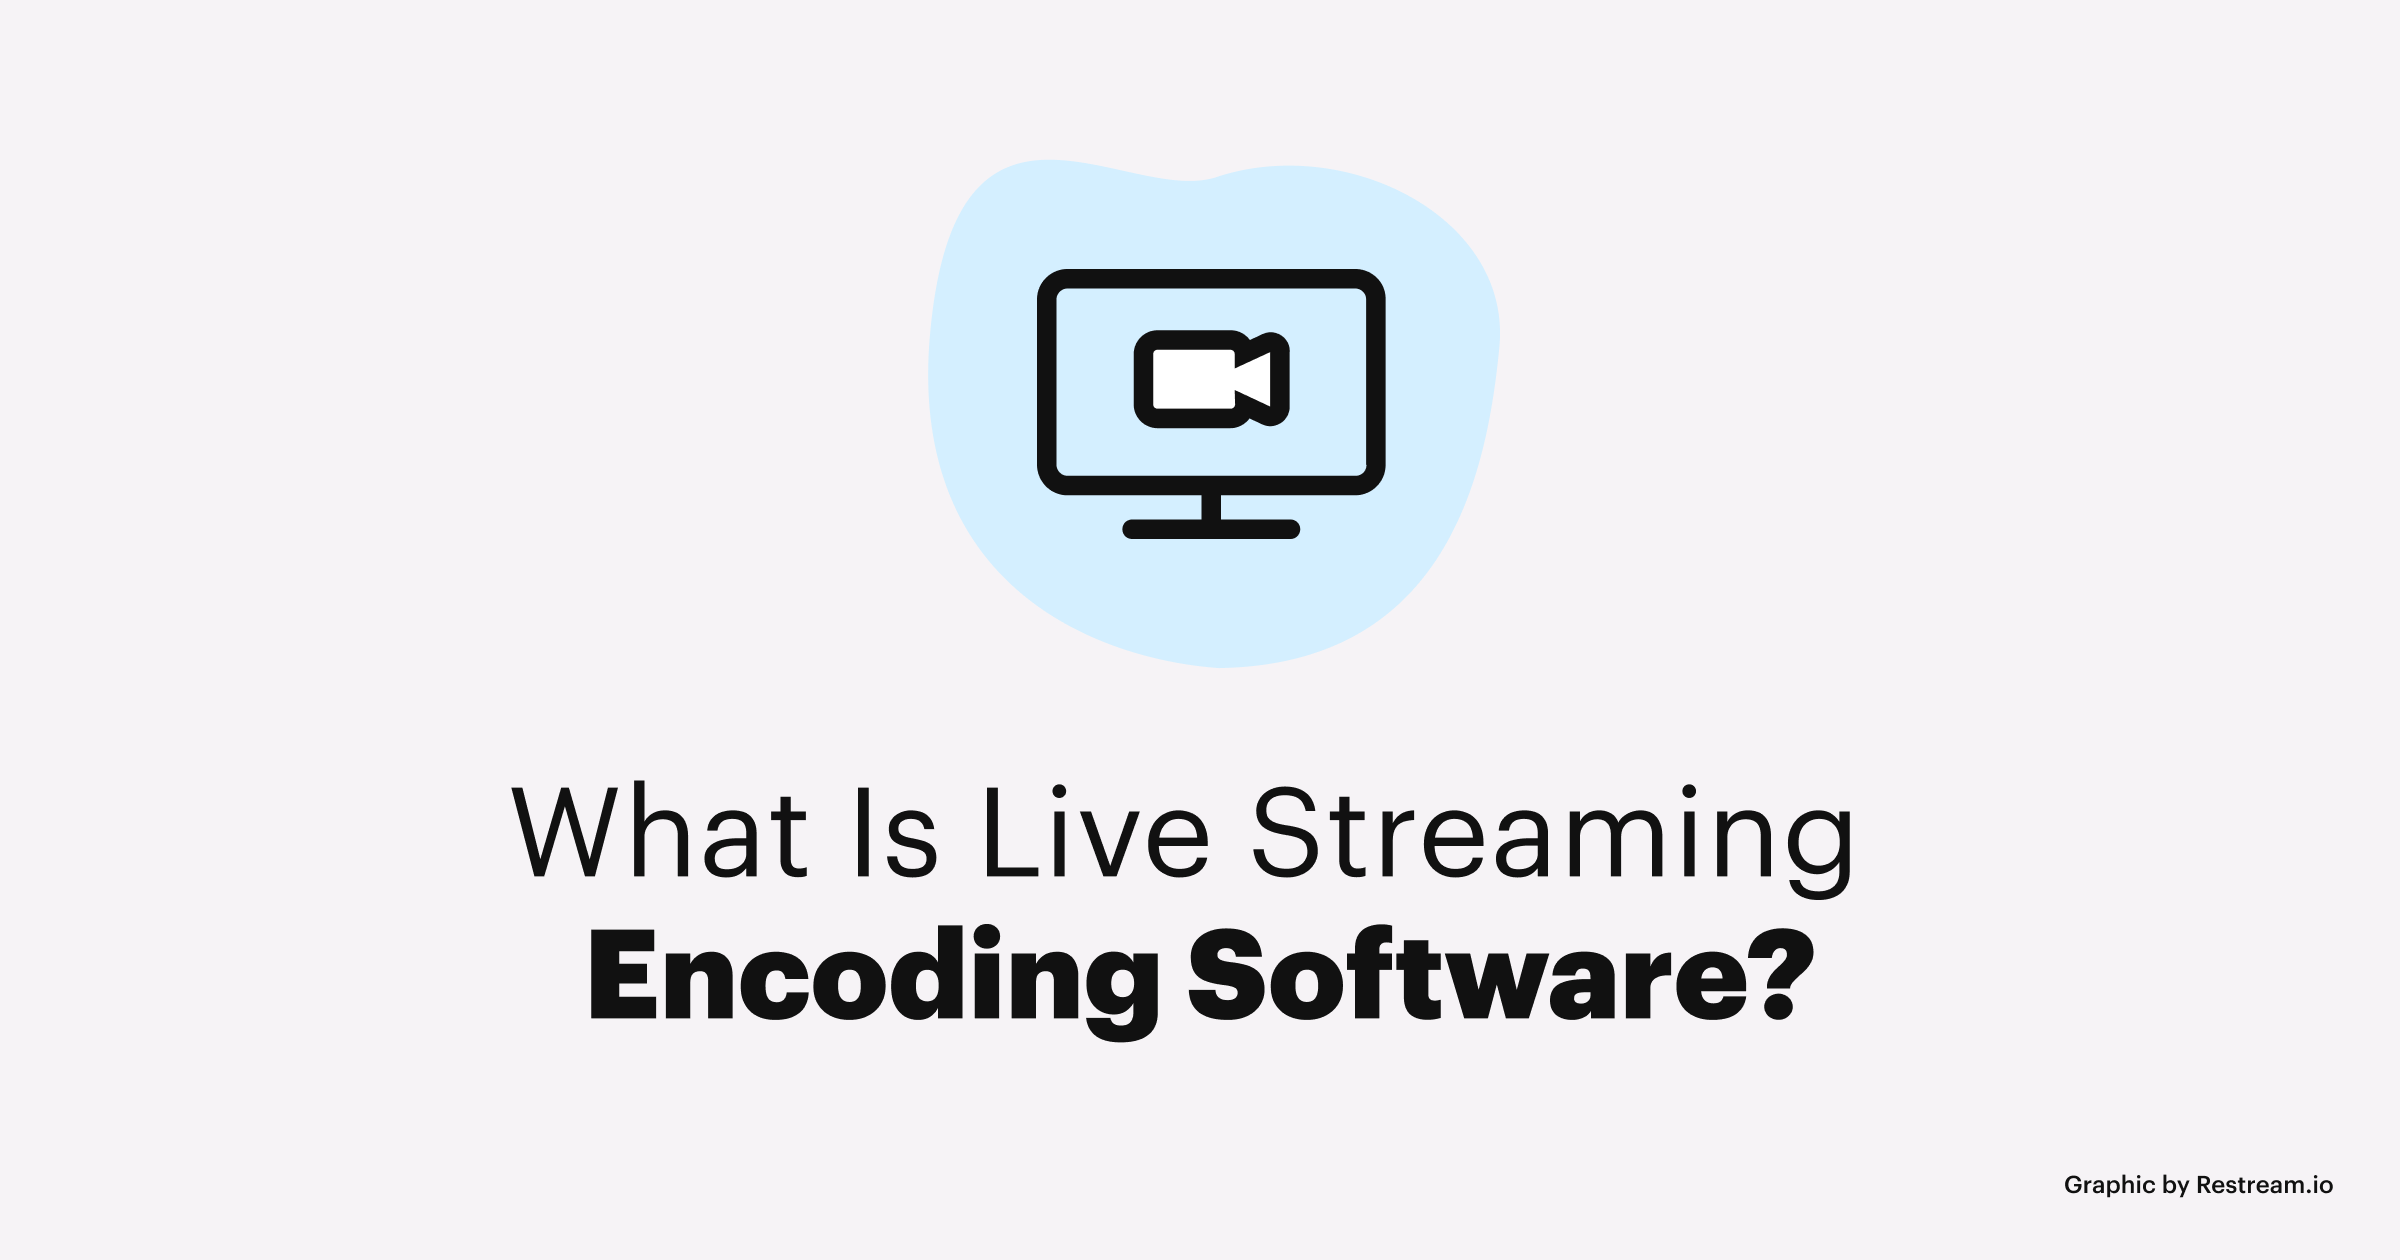 What Is Live Streaming Encoding Software?